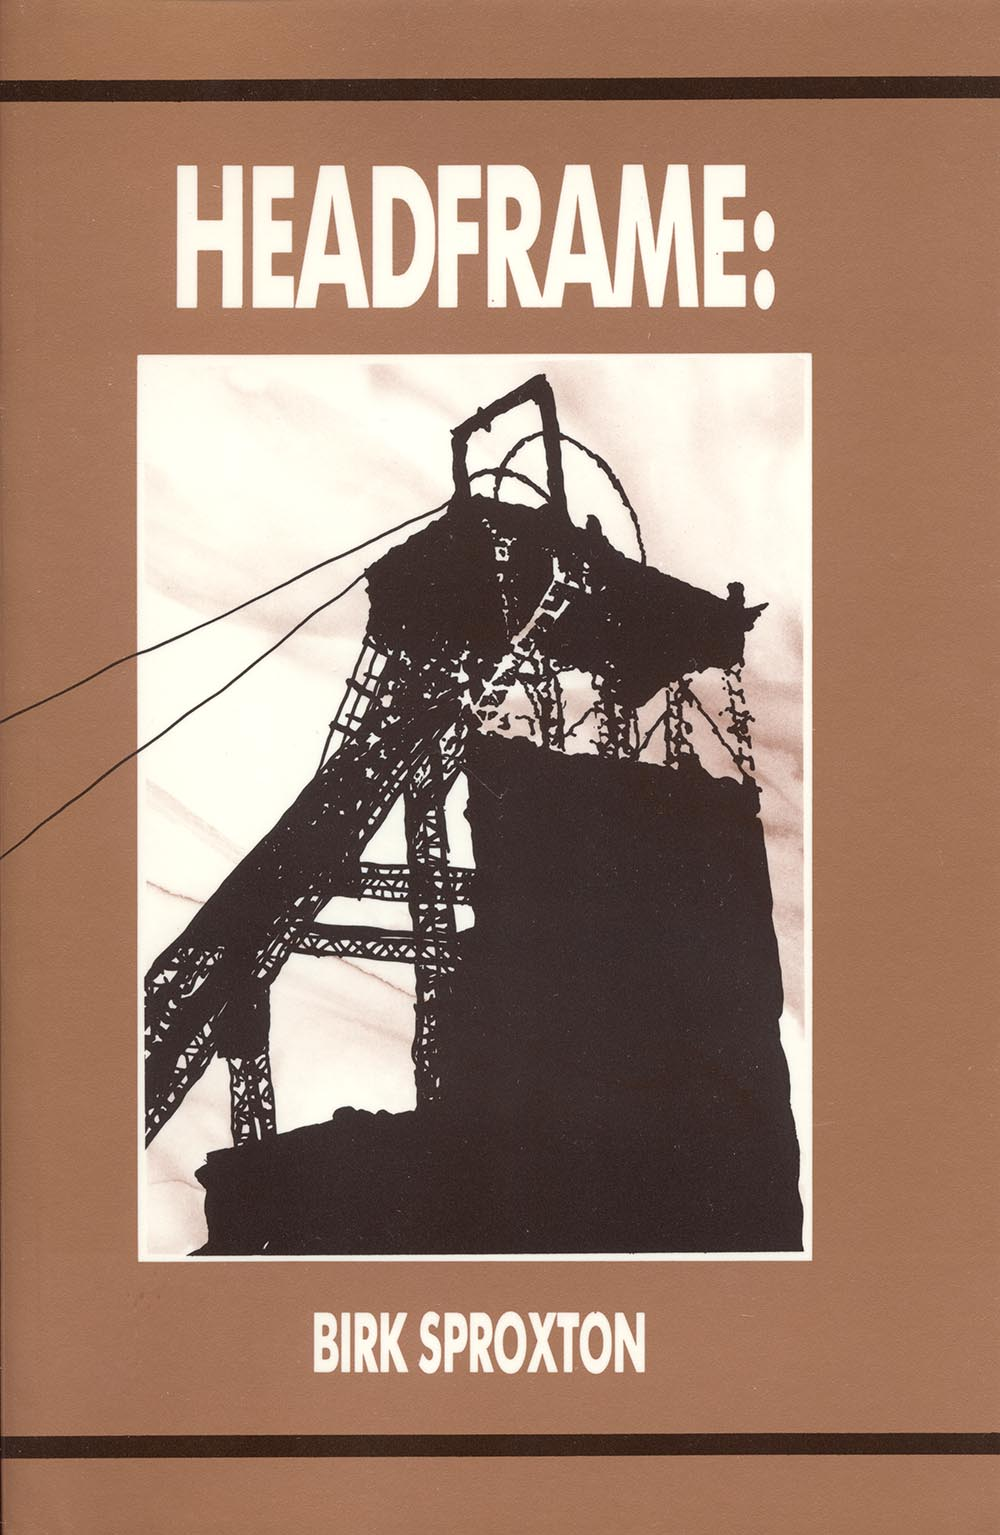 Headframe by Birk Sproxton